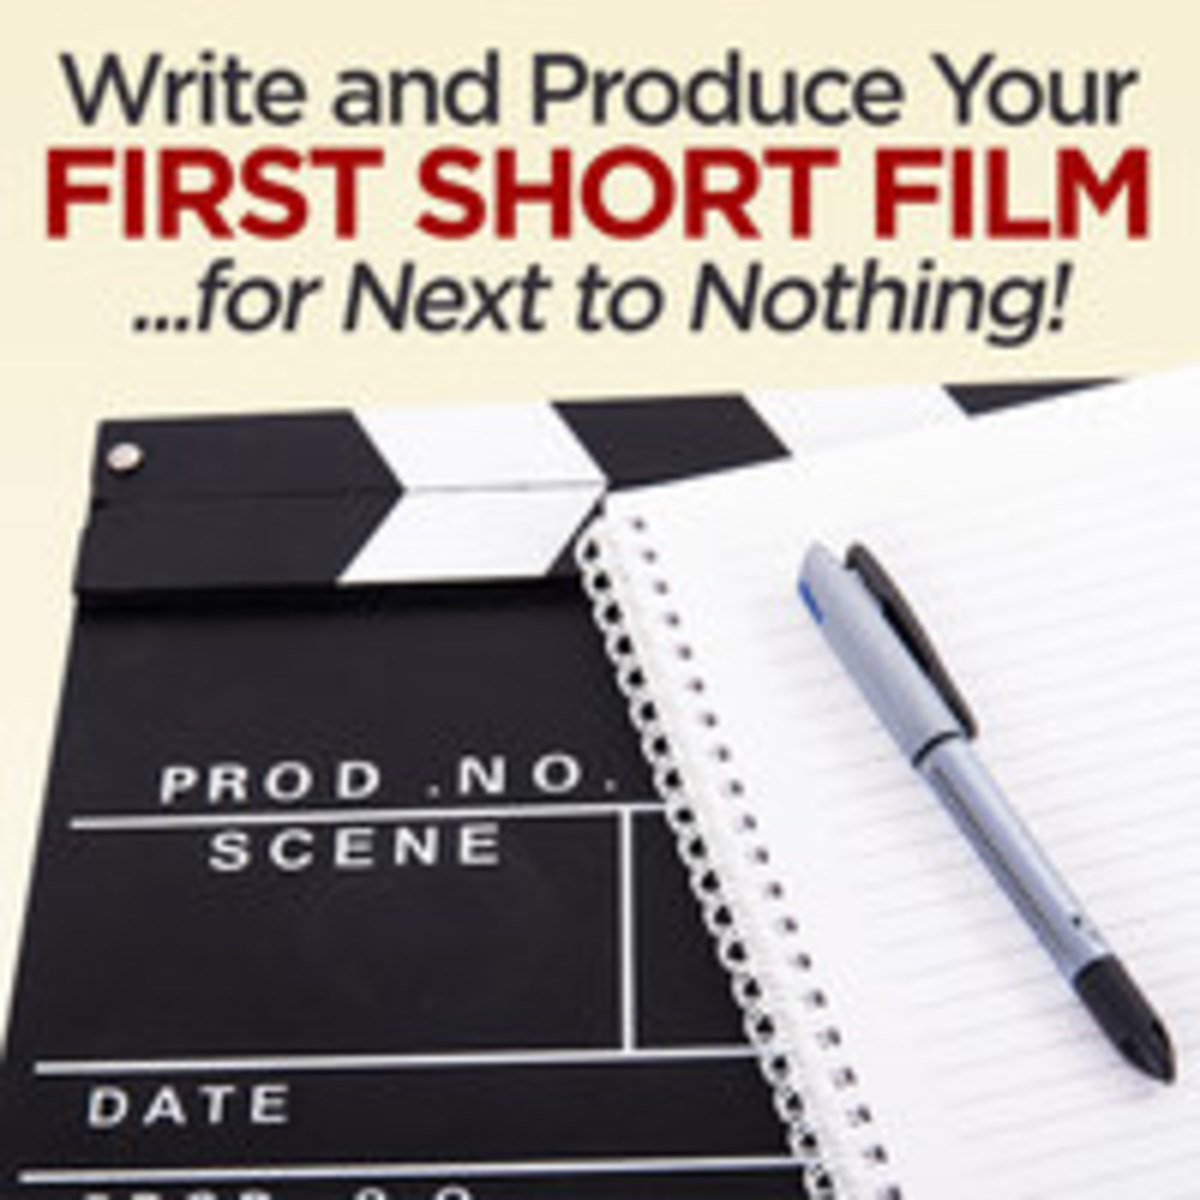 Write and Produce Your First Short Film... For Next to Nothing!